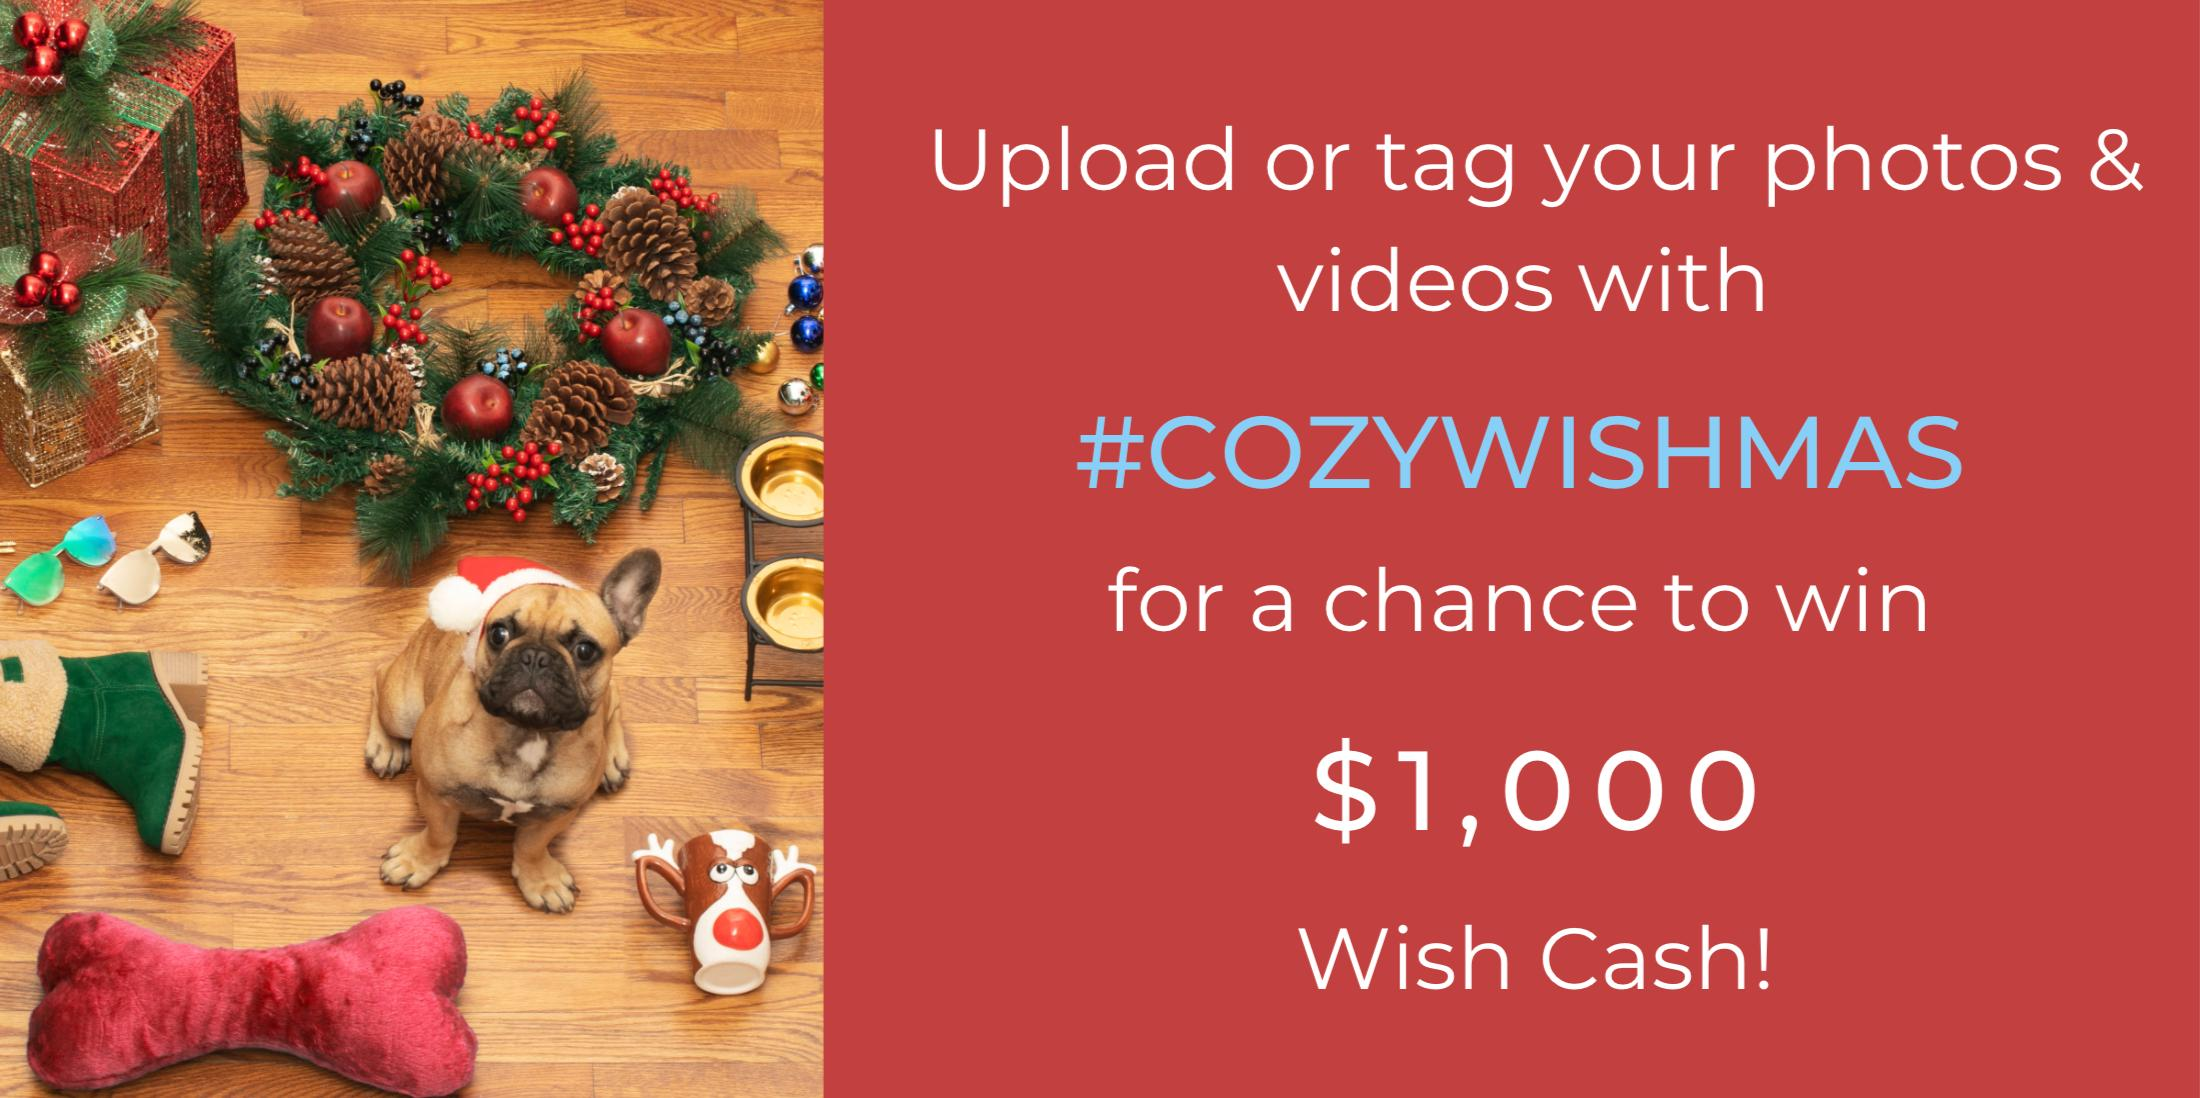 cozy-wishmas-contest-rules